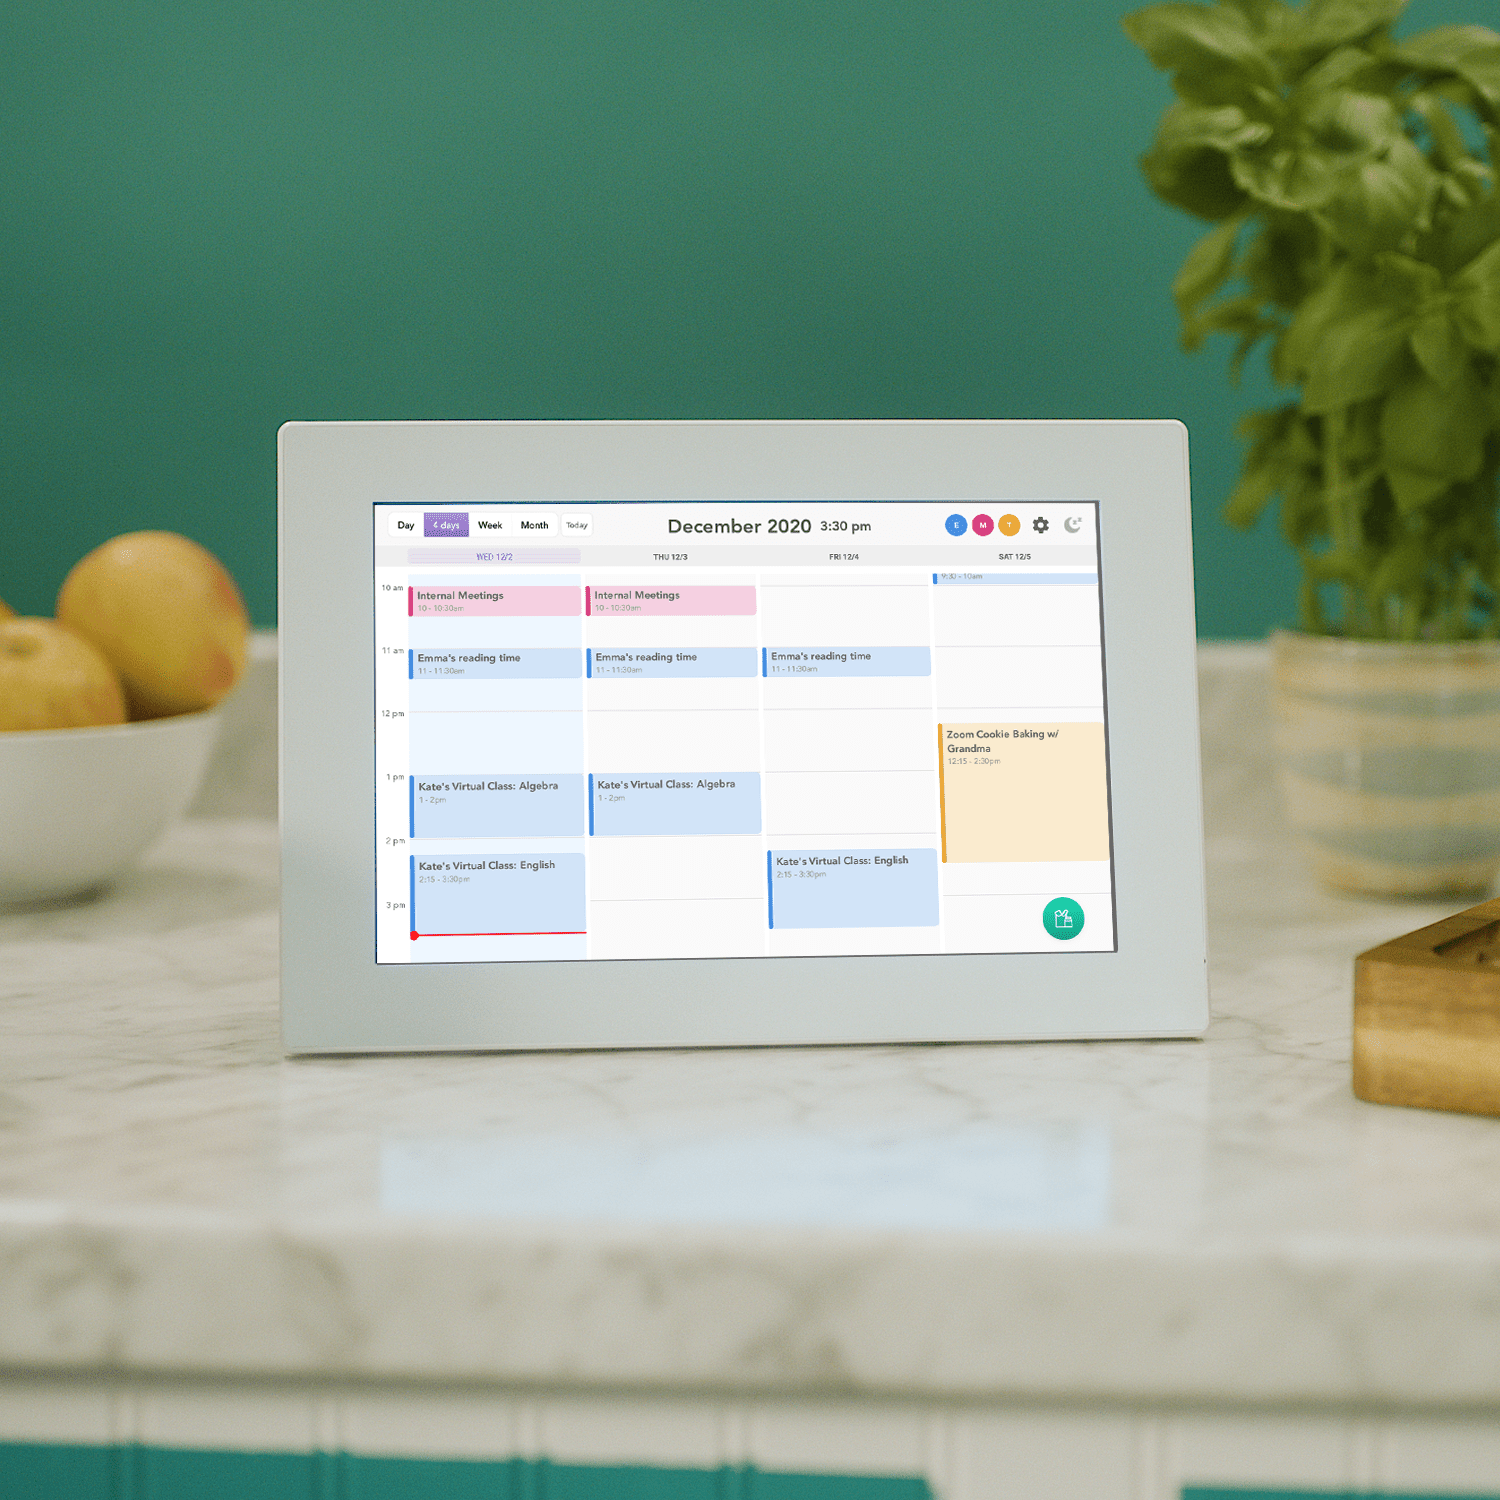 Meet The Simplest Way To Display Your Family Calendar